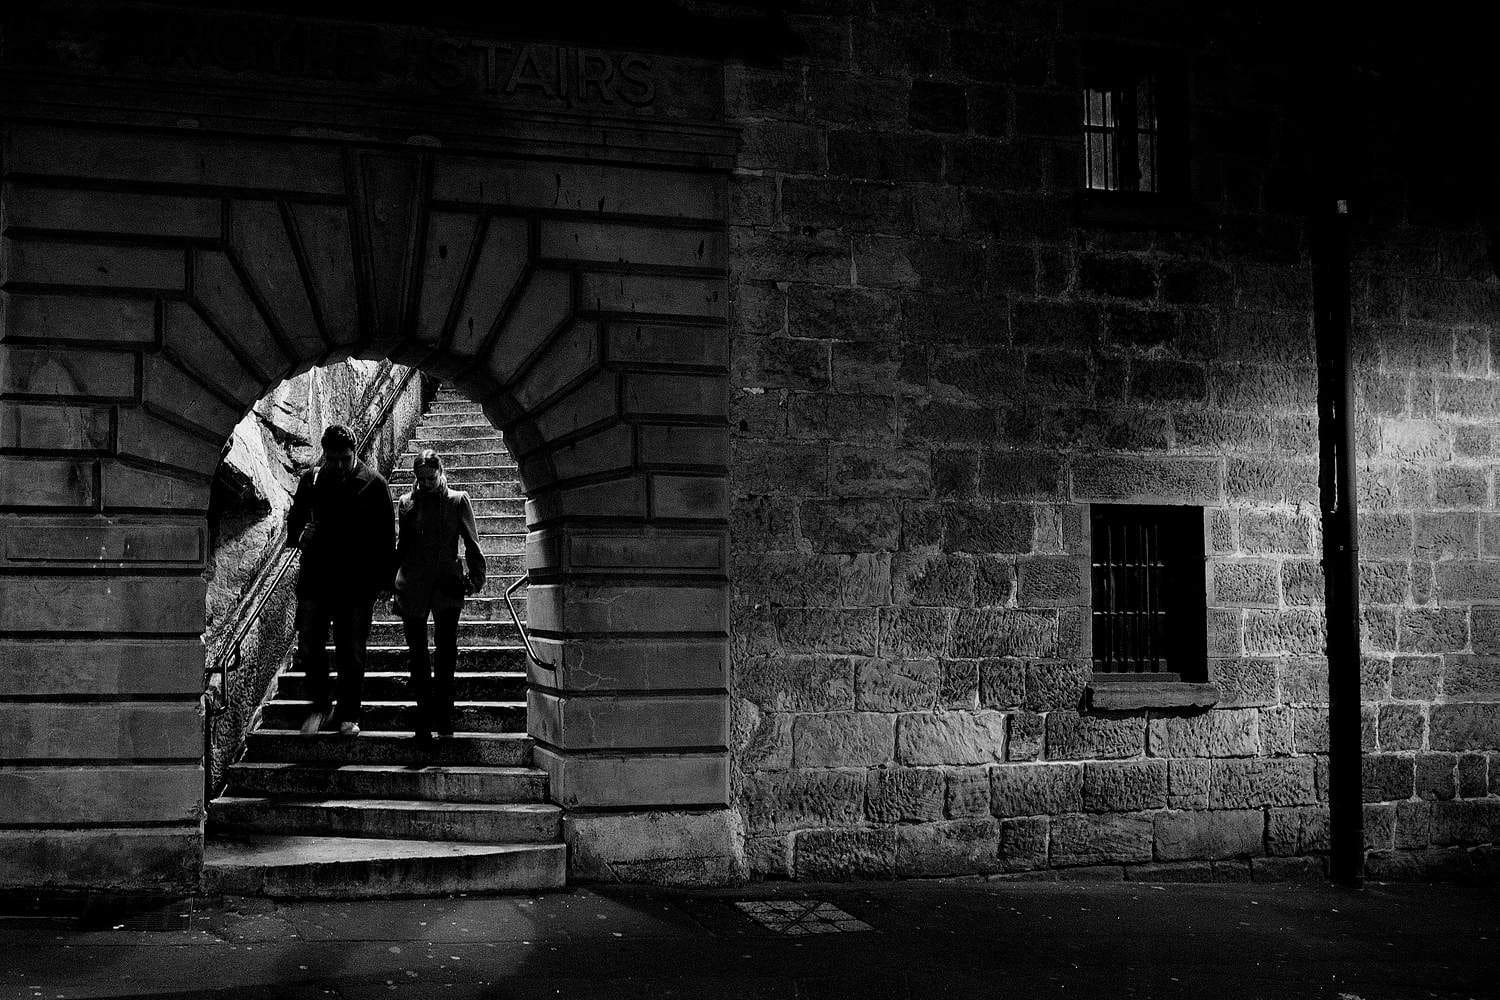 Street Photo with People in Silhouette at The Rocks in Sydney